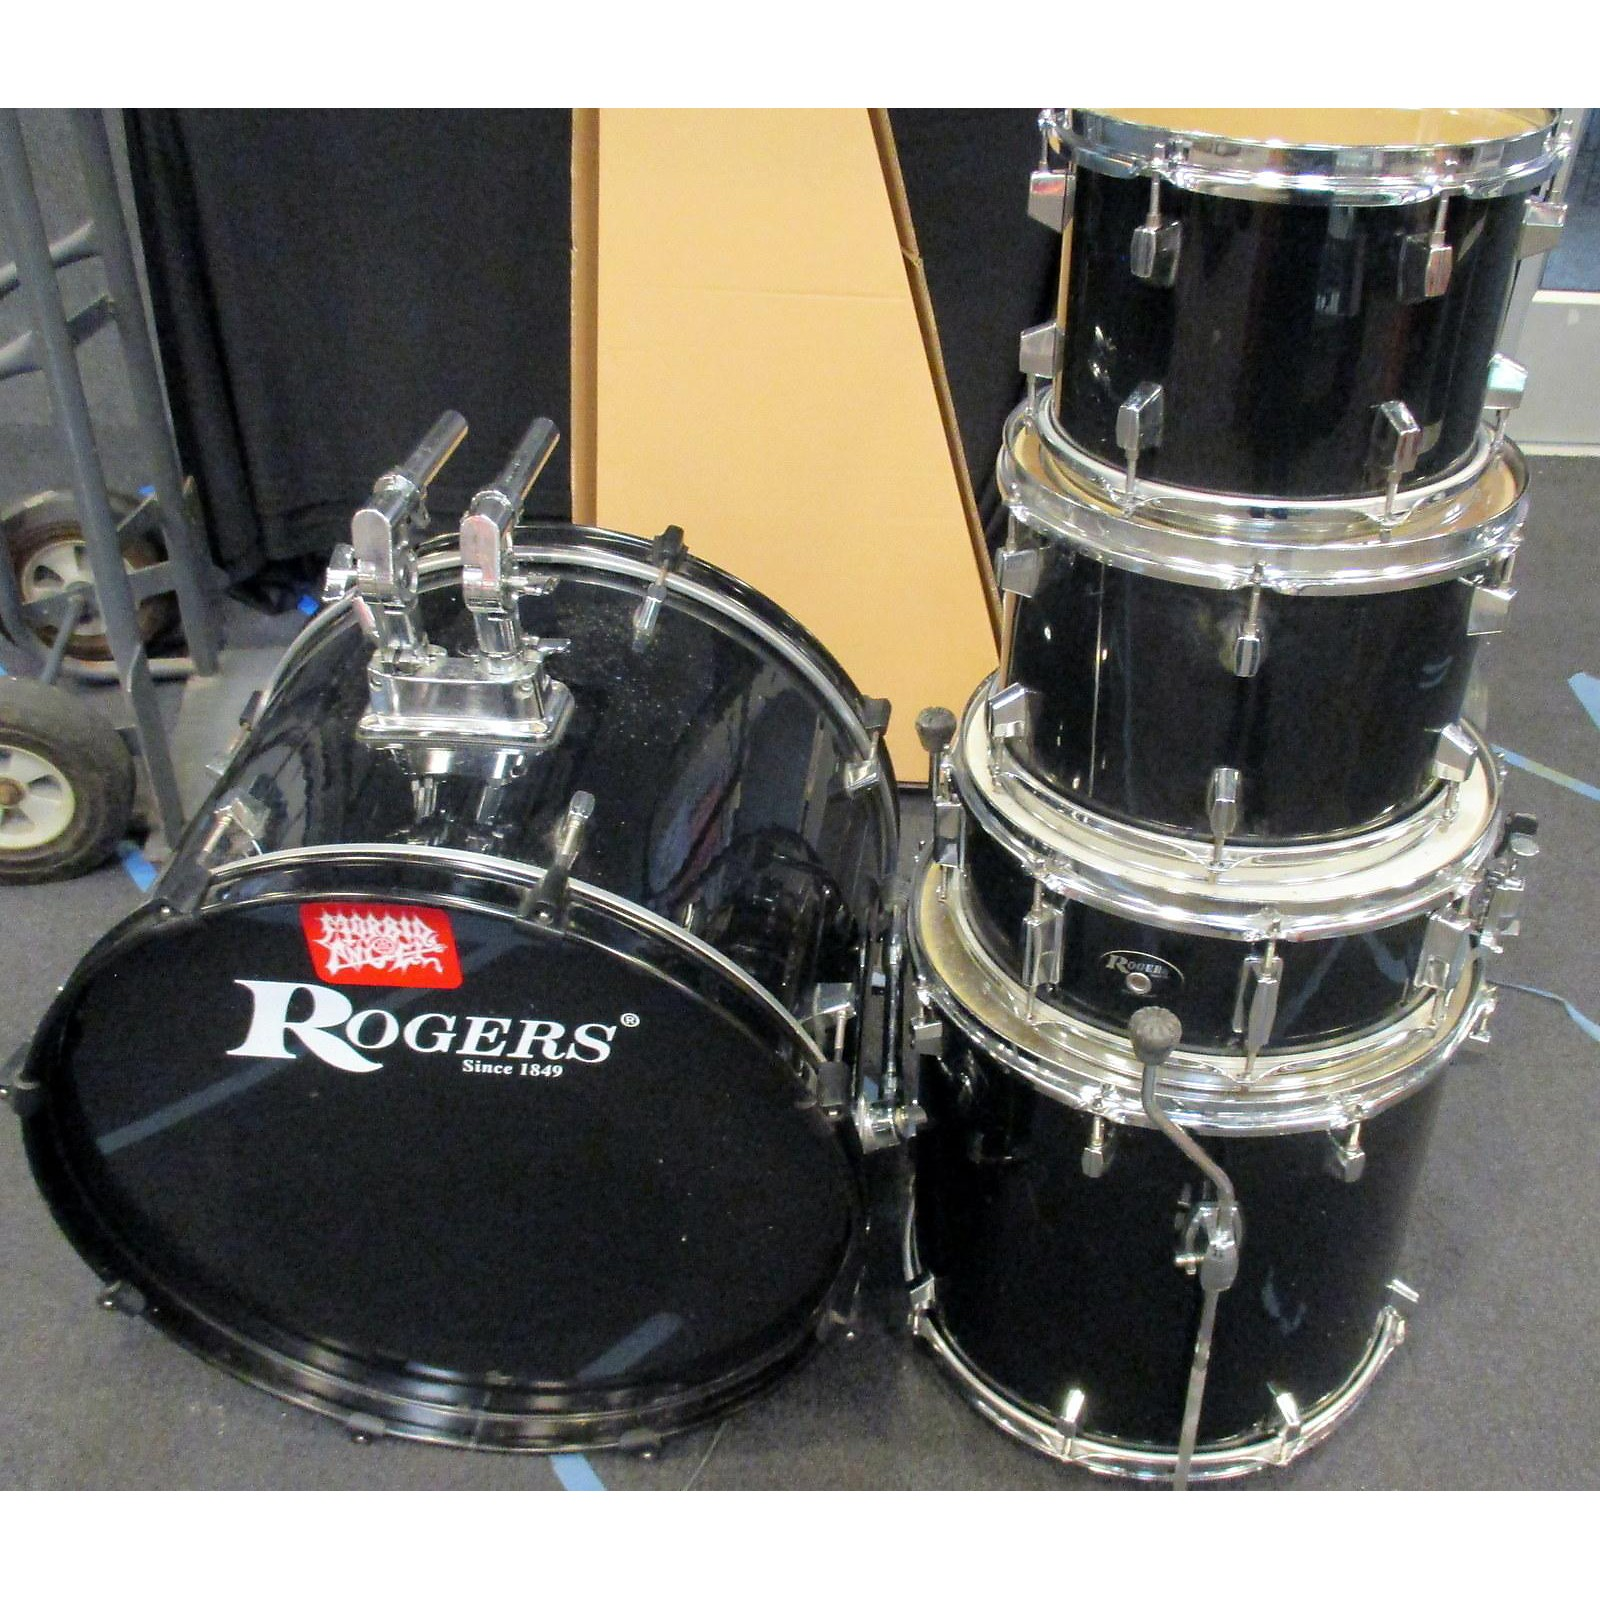 Rodgers Drum Kit Drum Kit